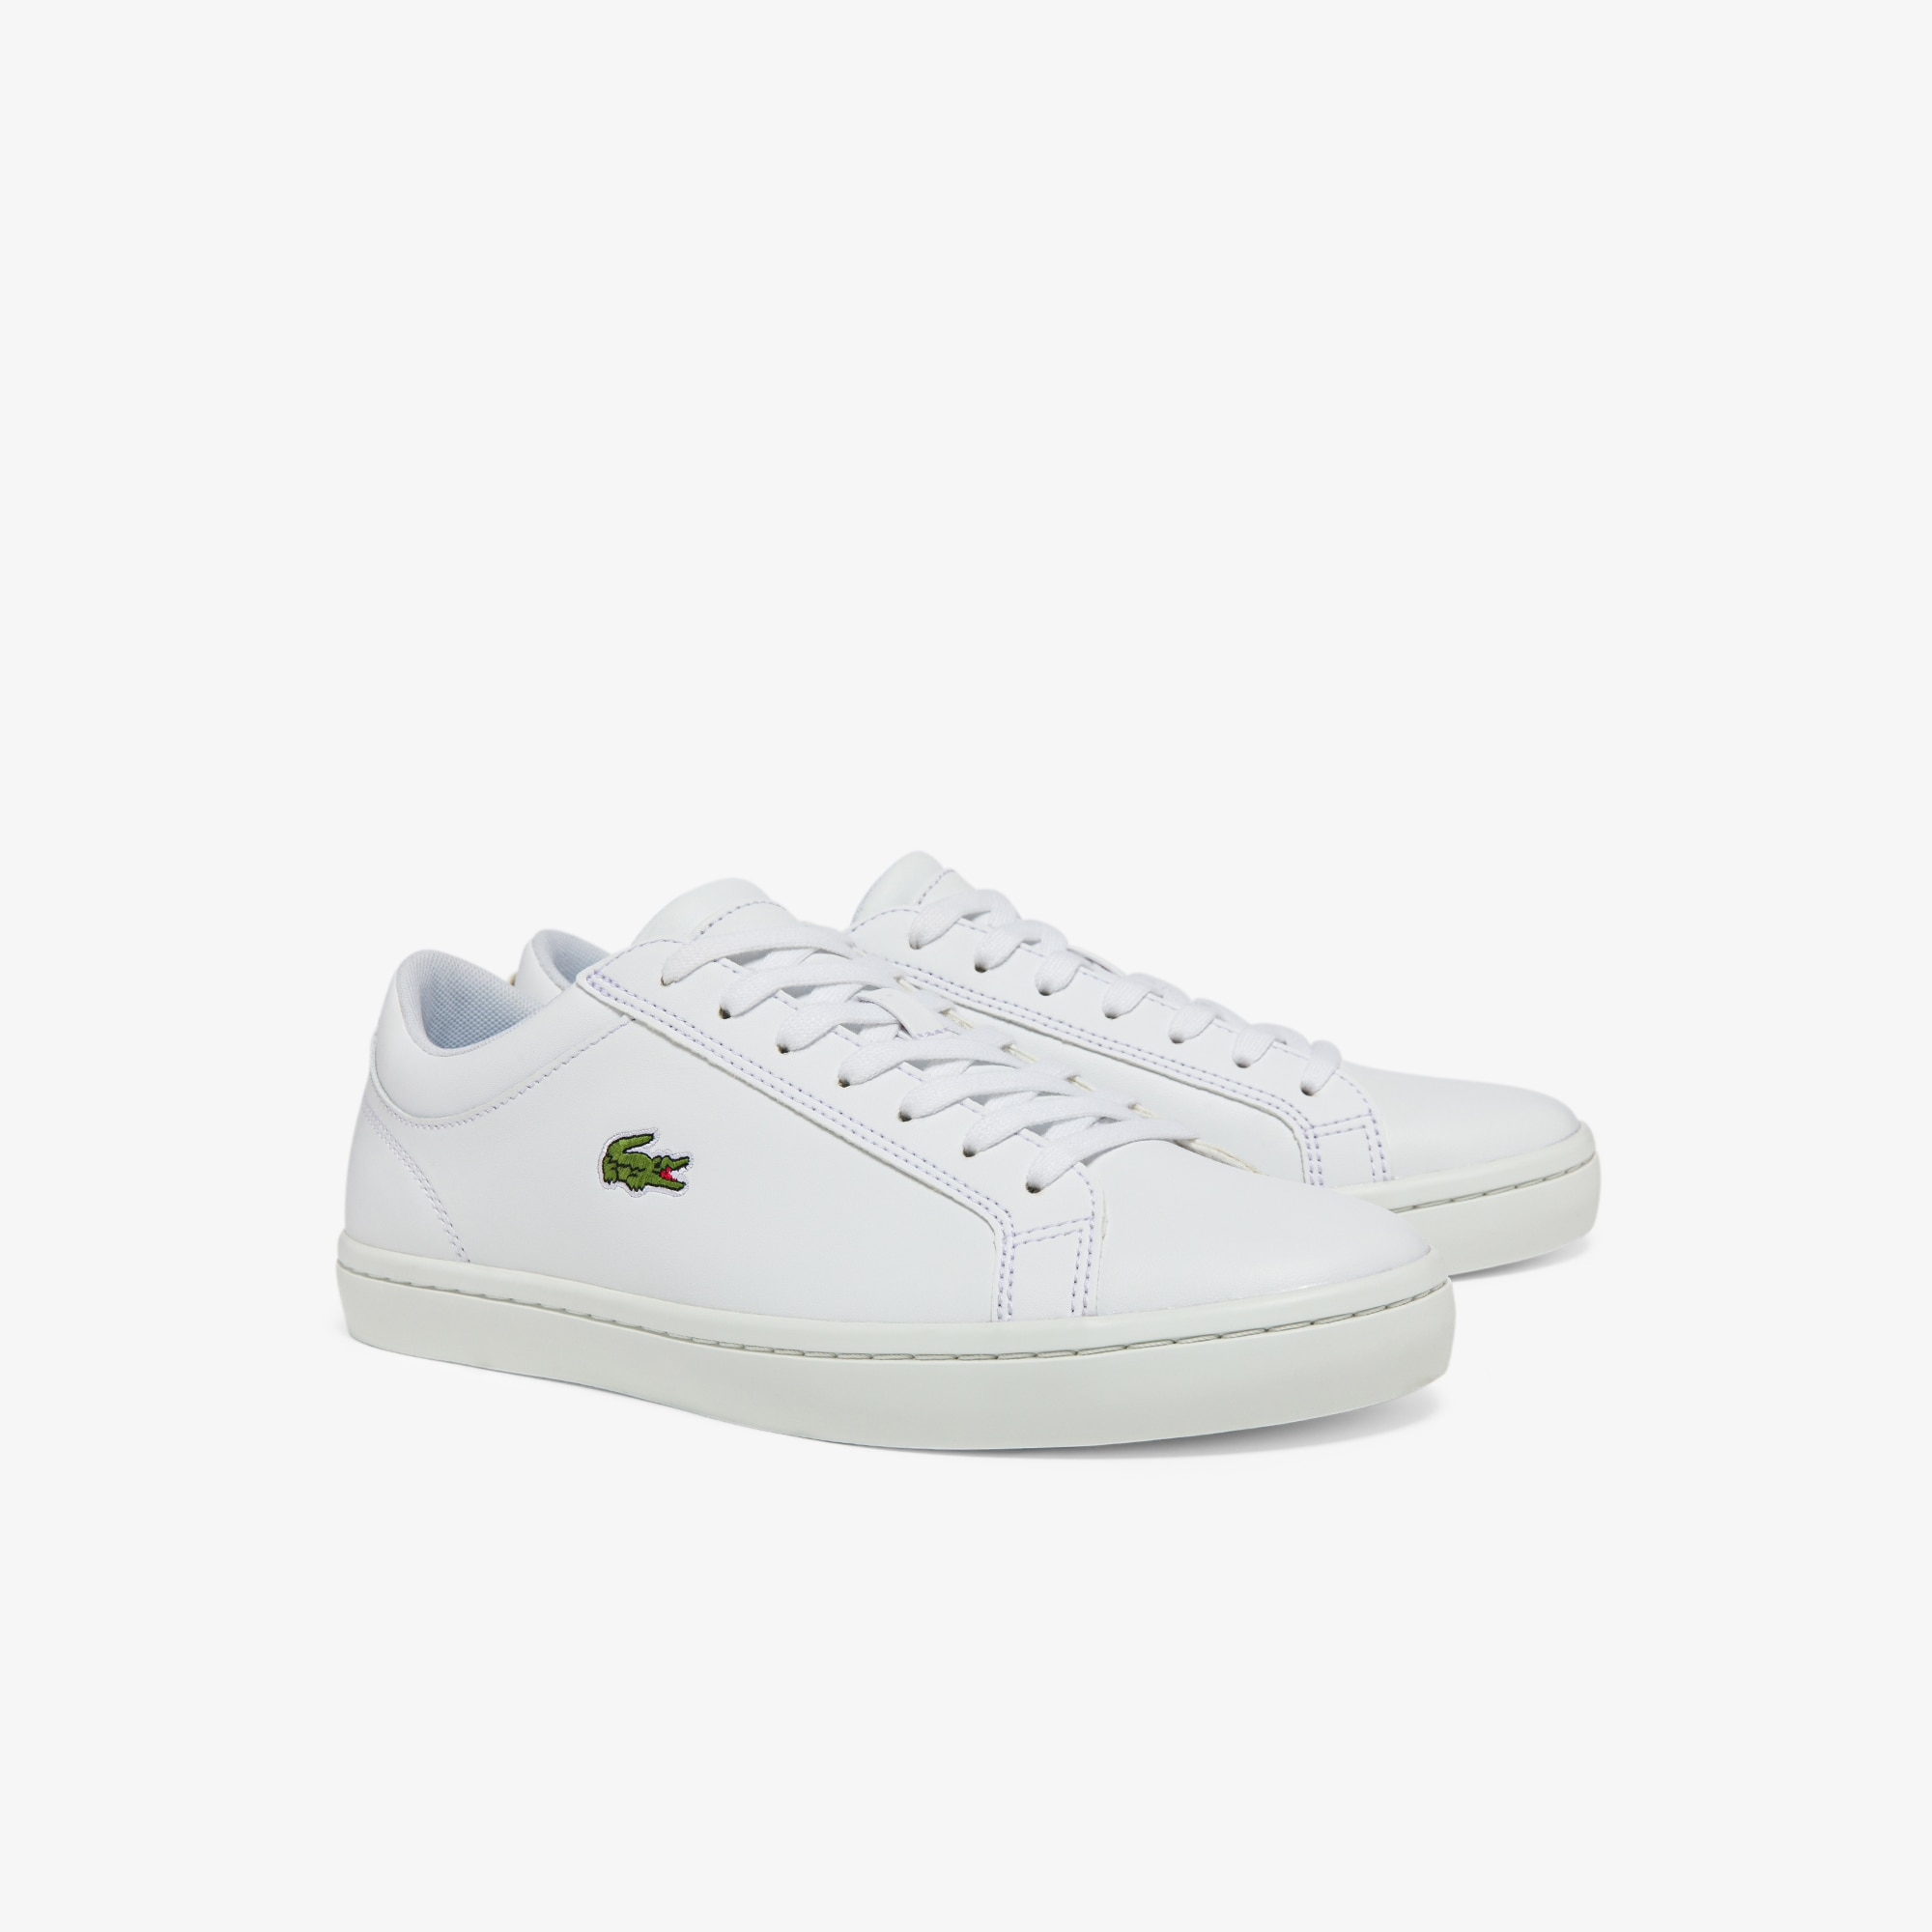 44423c777 Men s Straightset Leather Trainers